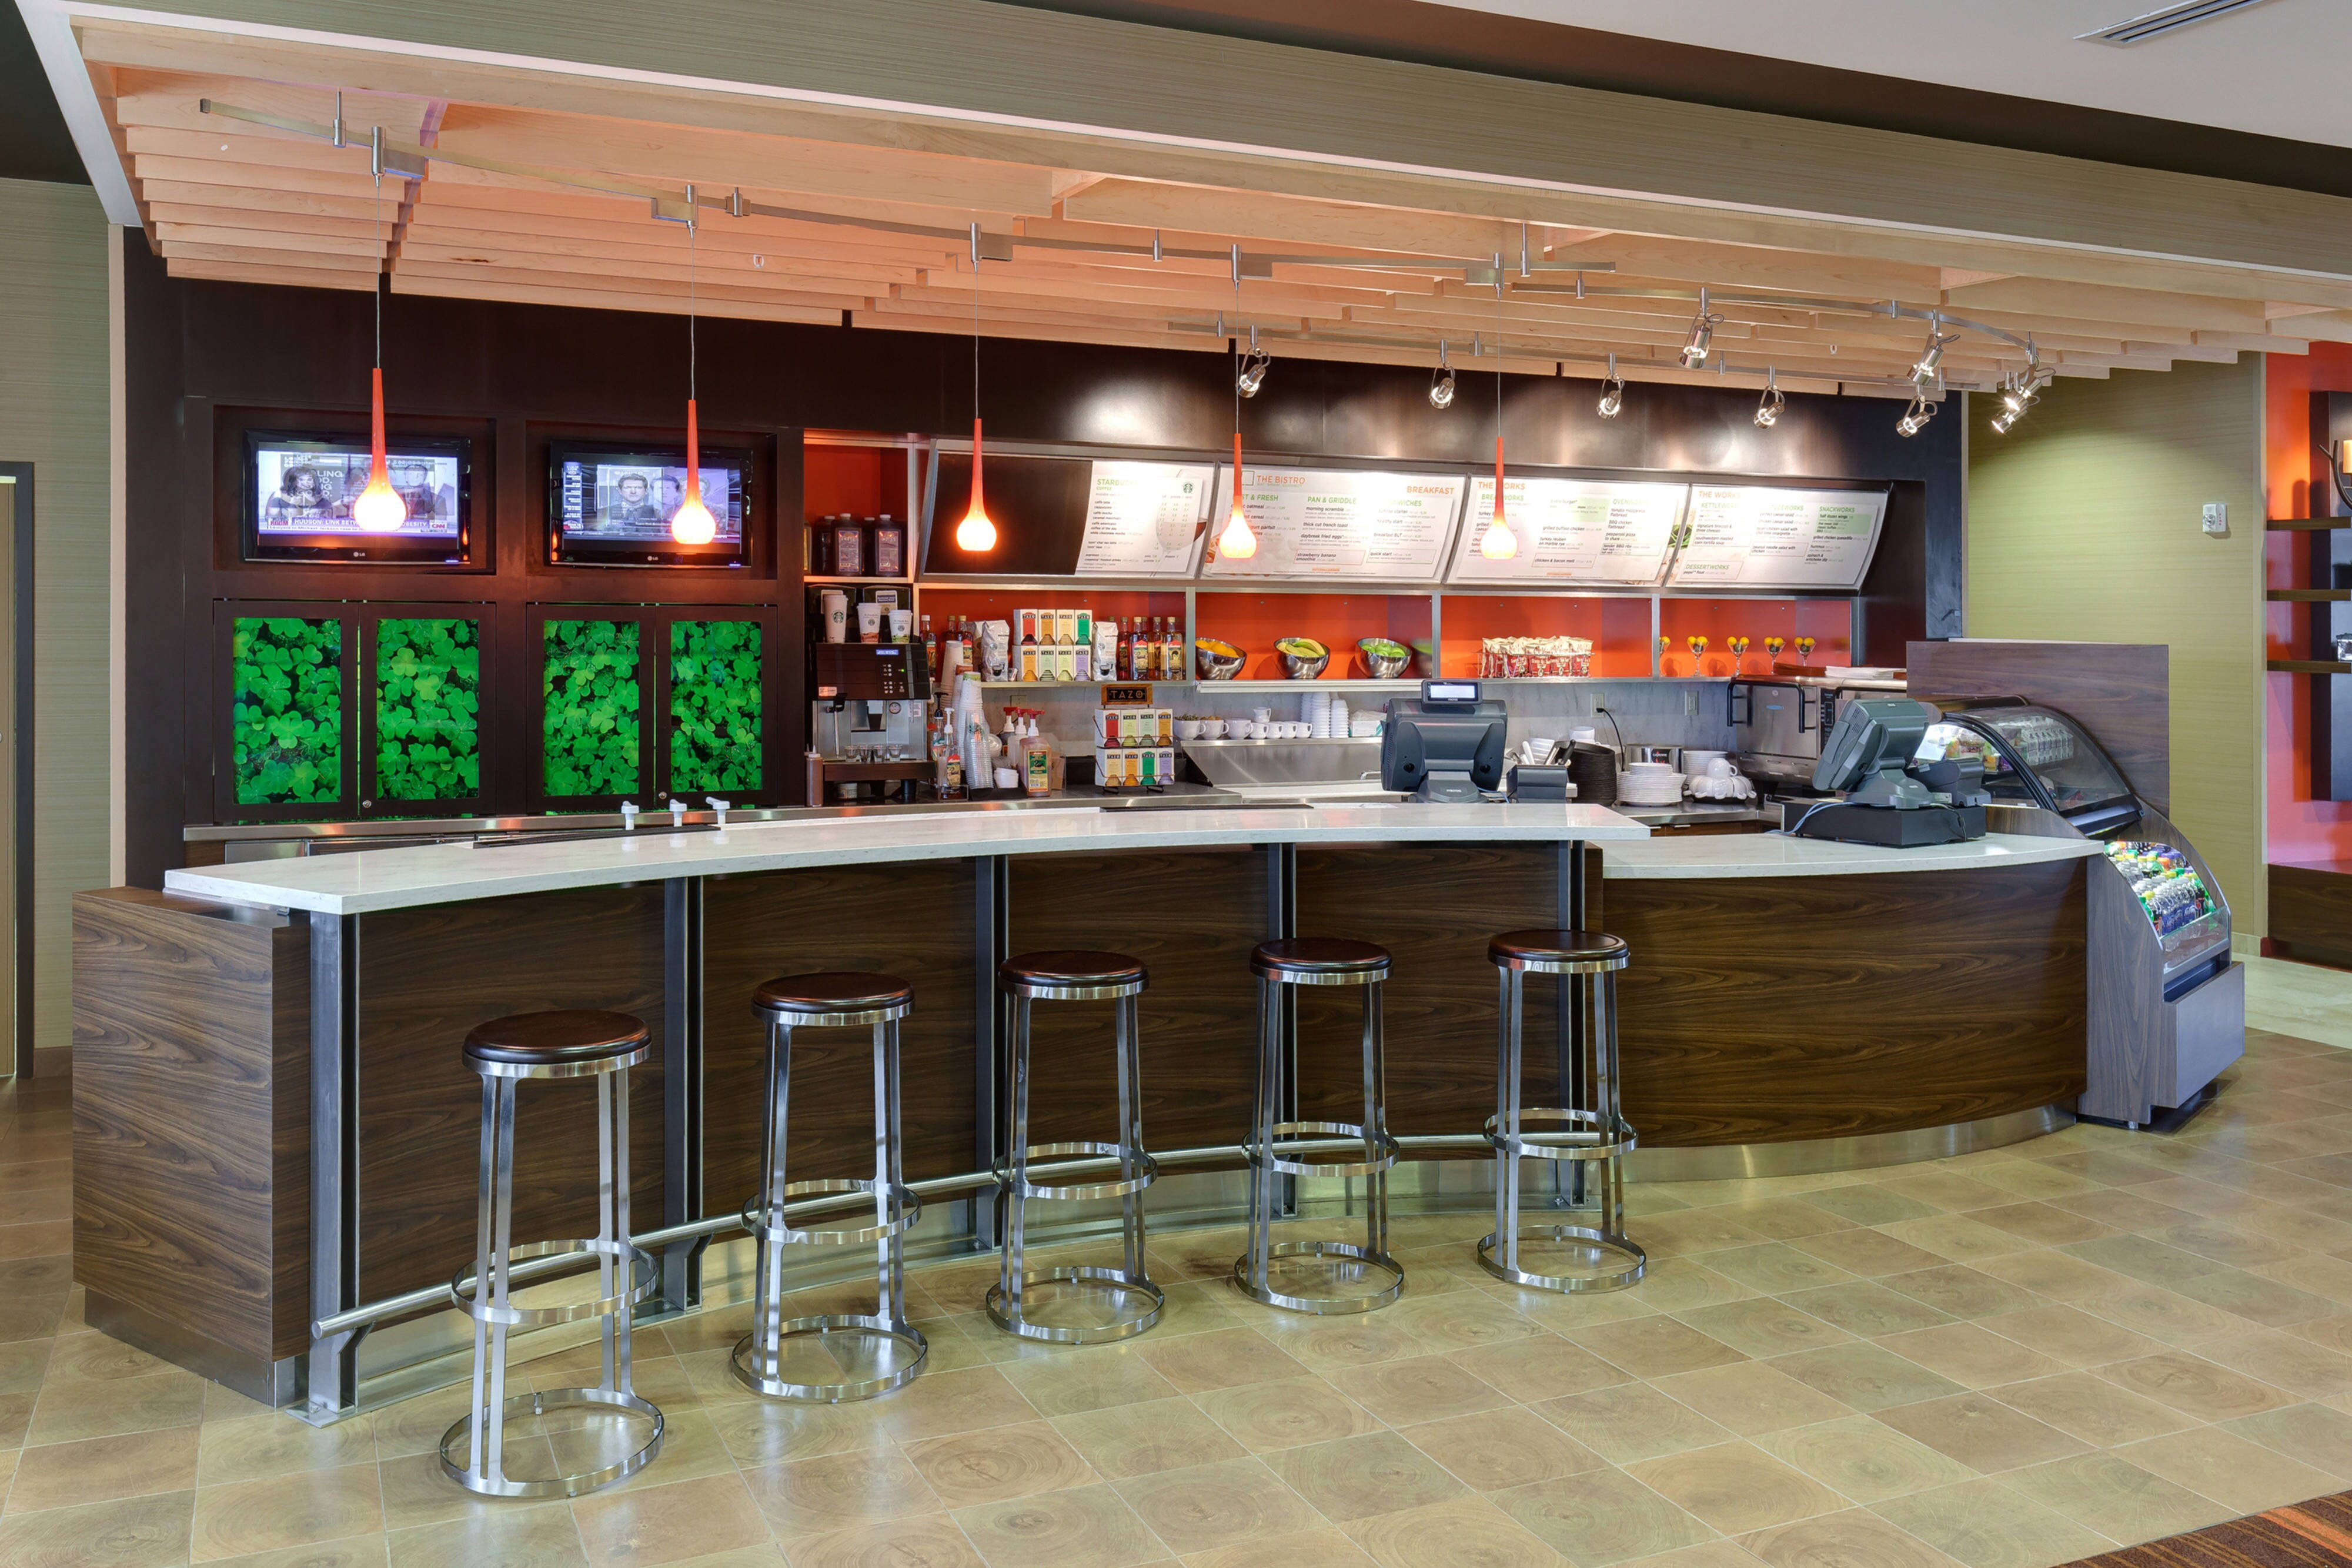 Buffalo airport hotel restaurant